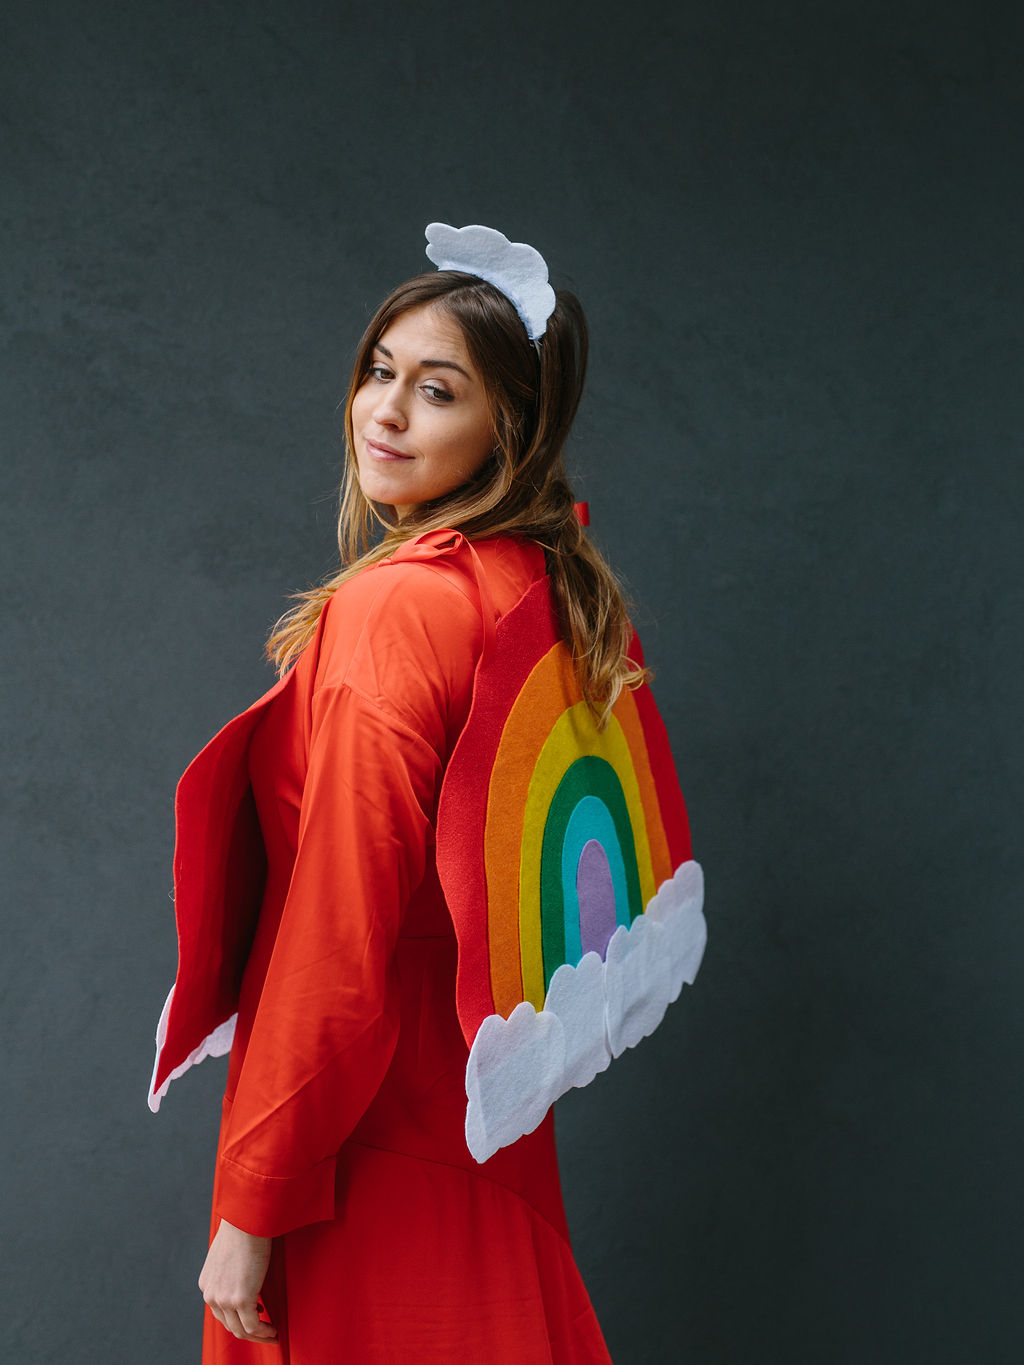 Showing the back of the rainbow costume